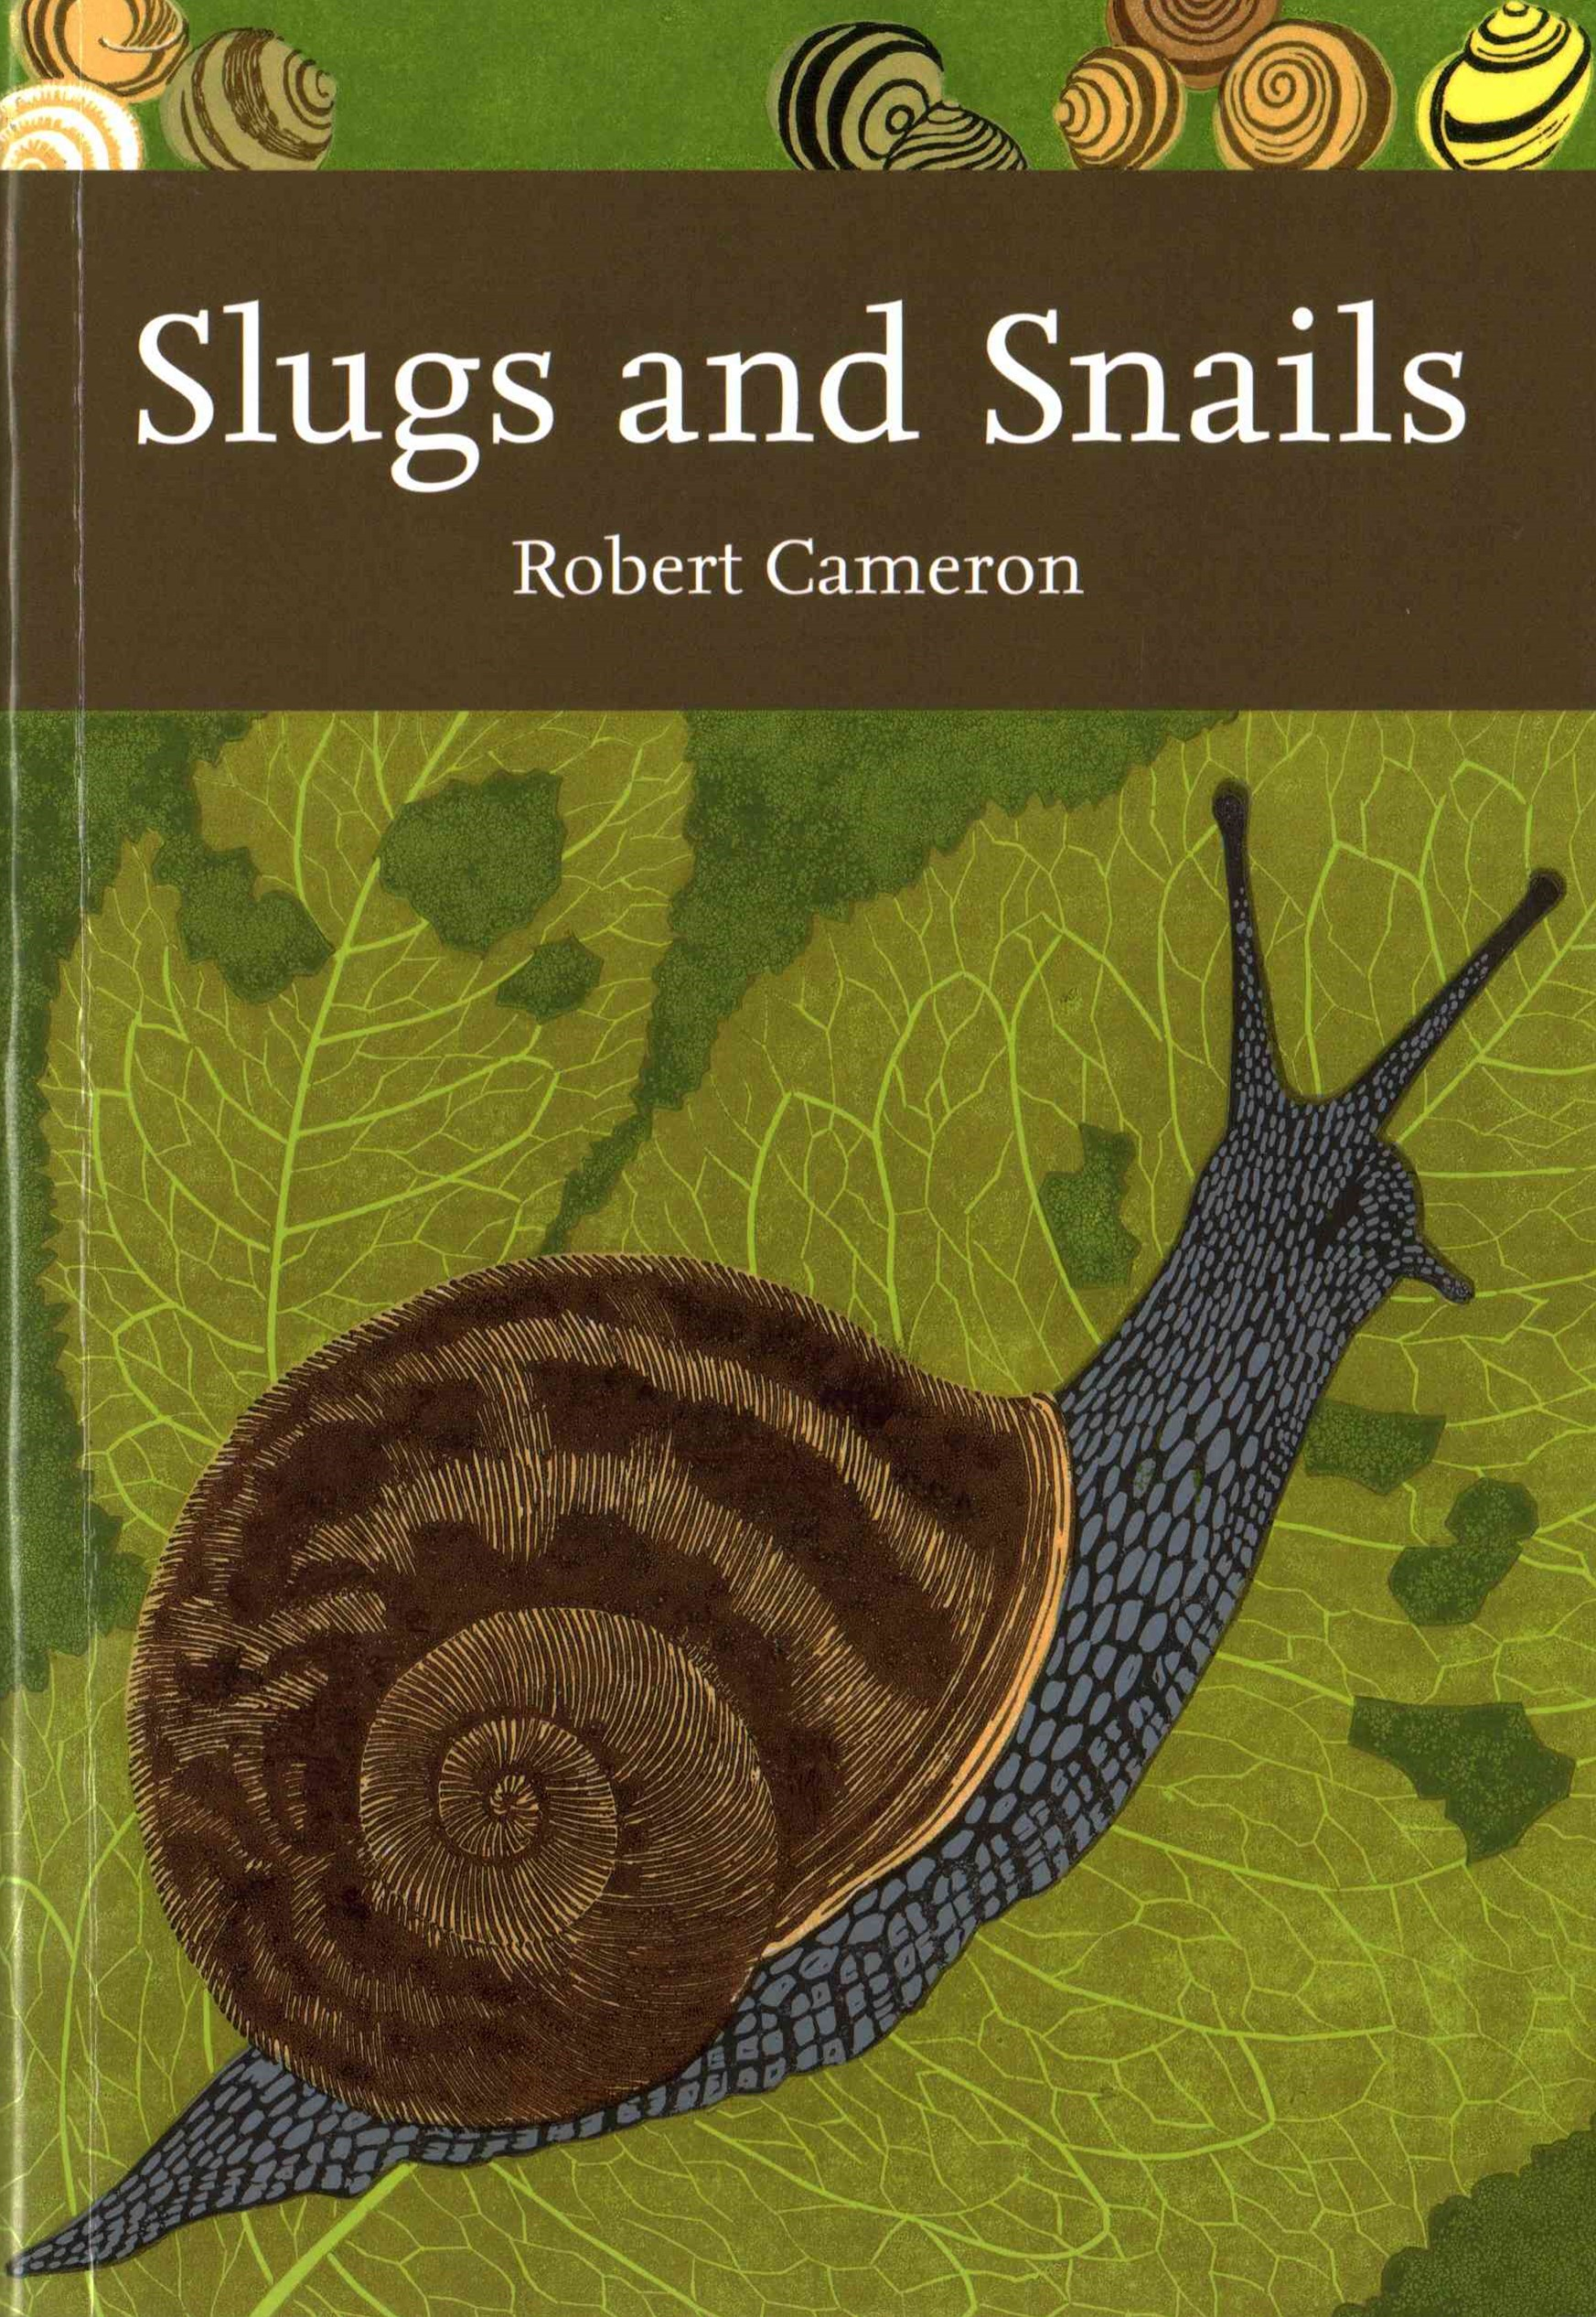 Collins New Naturalist Library: Slugs and Snails